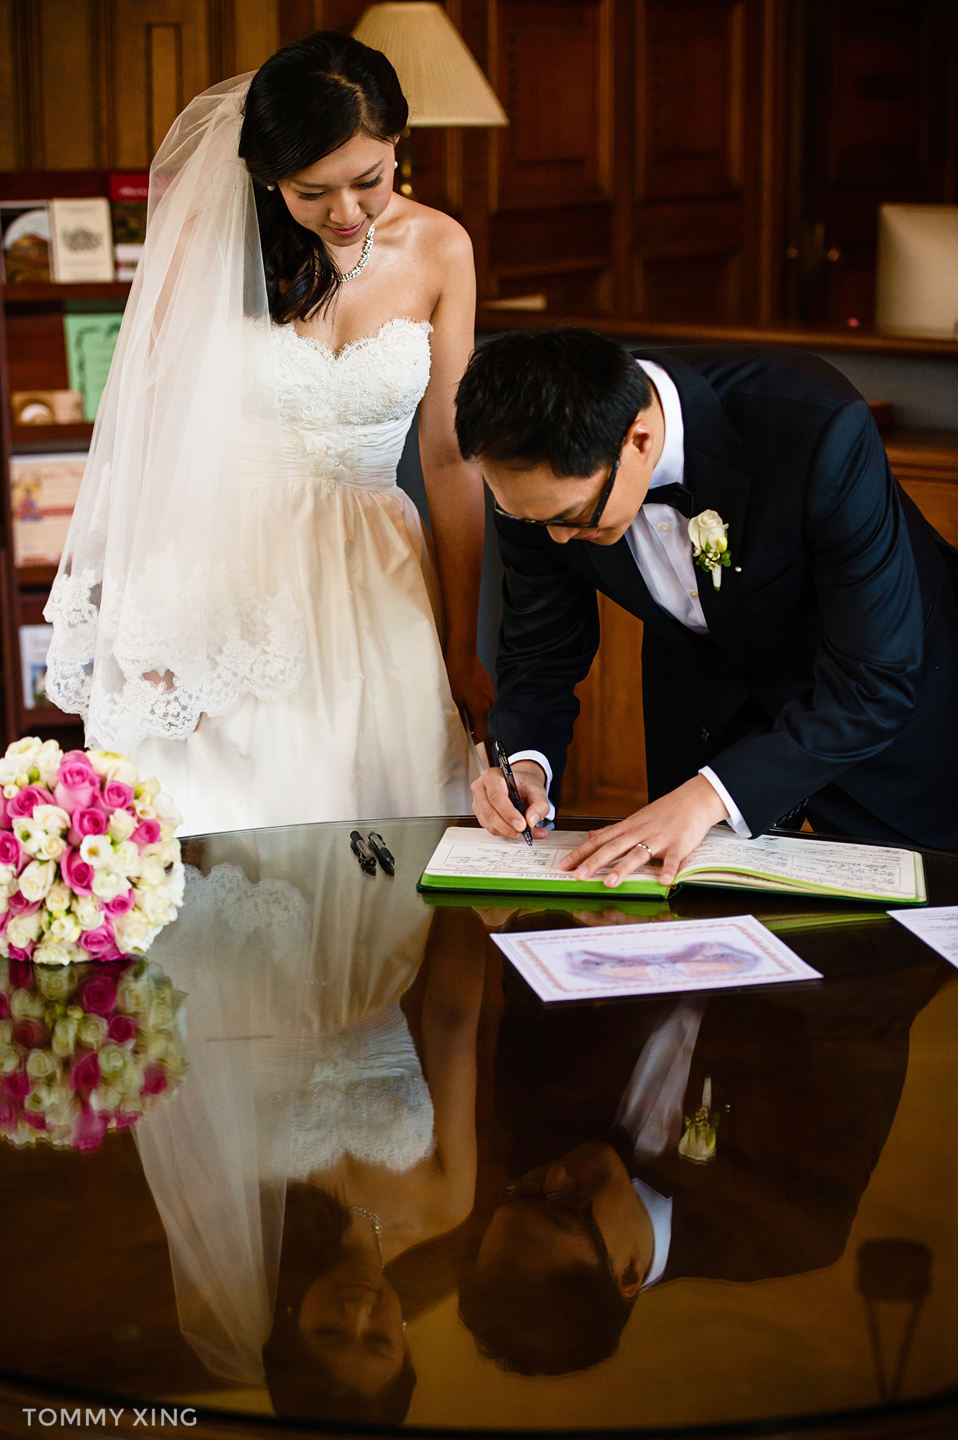 STANFORD MEMORIAL CHURCH WEDDING SAN FRANCISCO BAY AREA 斯坦福教堂婚礼 洛杉矶婚礼婚纱摄影师  Tommy Xing 56.jpg